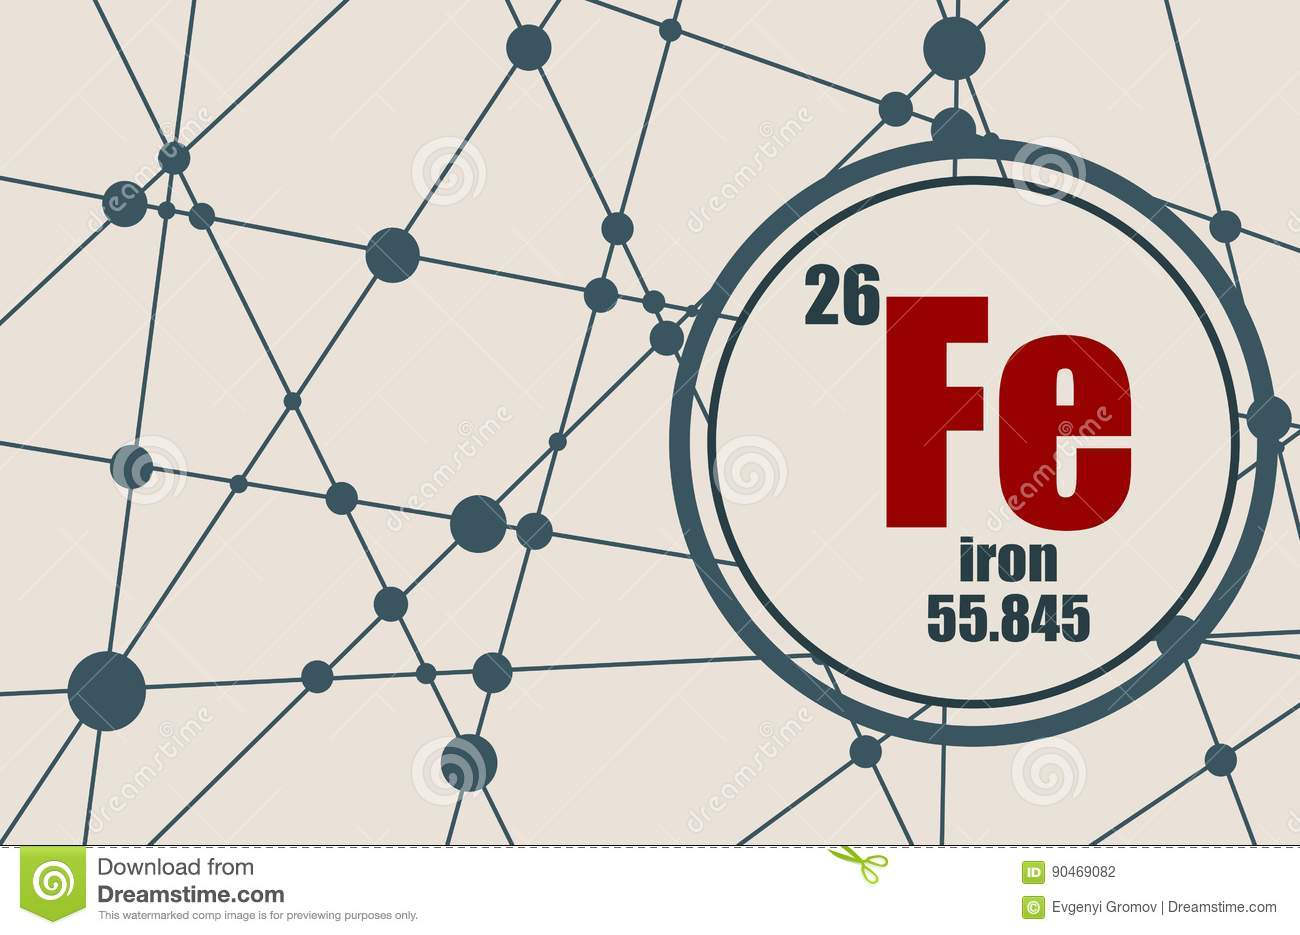 Iron chemical element stock vector illustration of layout 90469082 download comp urtaz Images